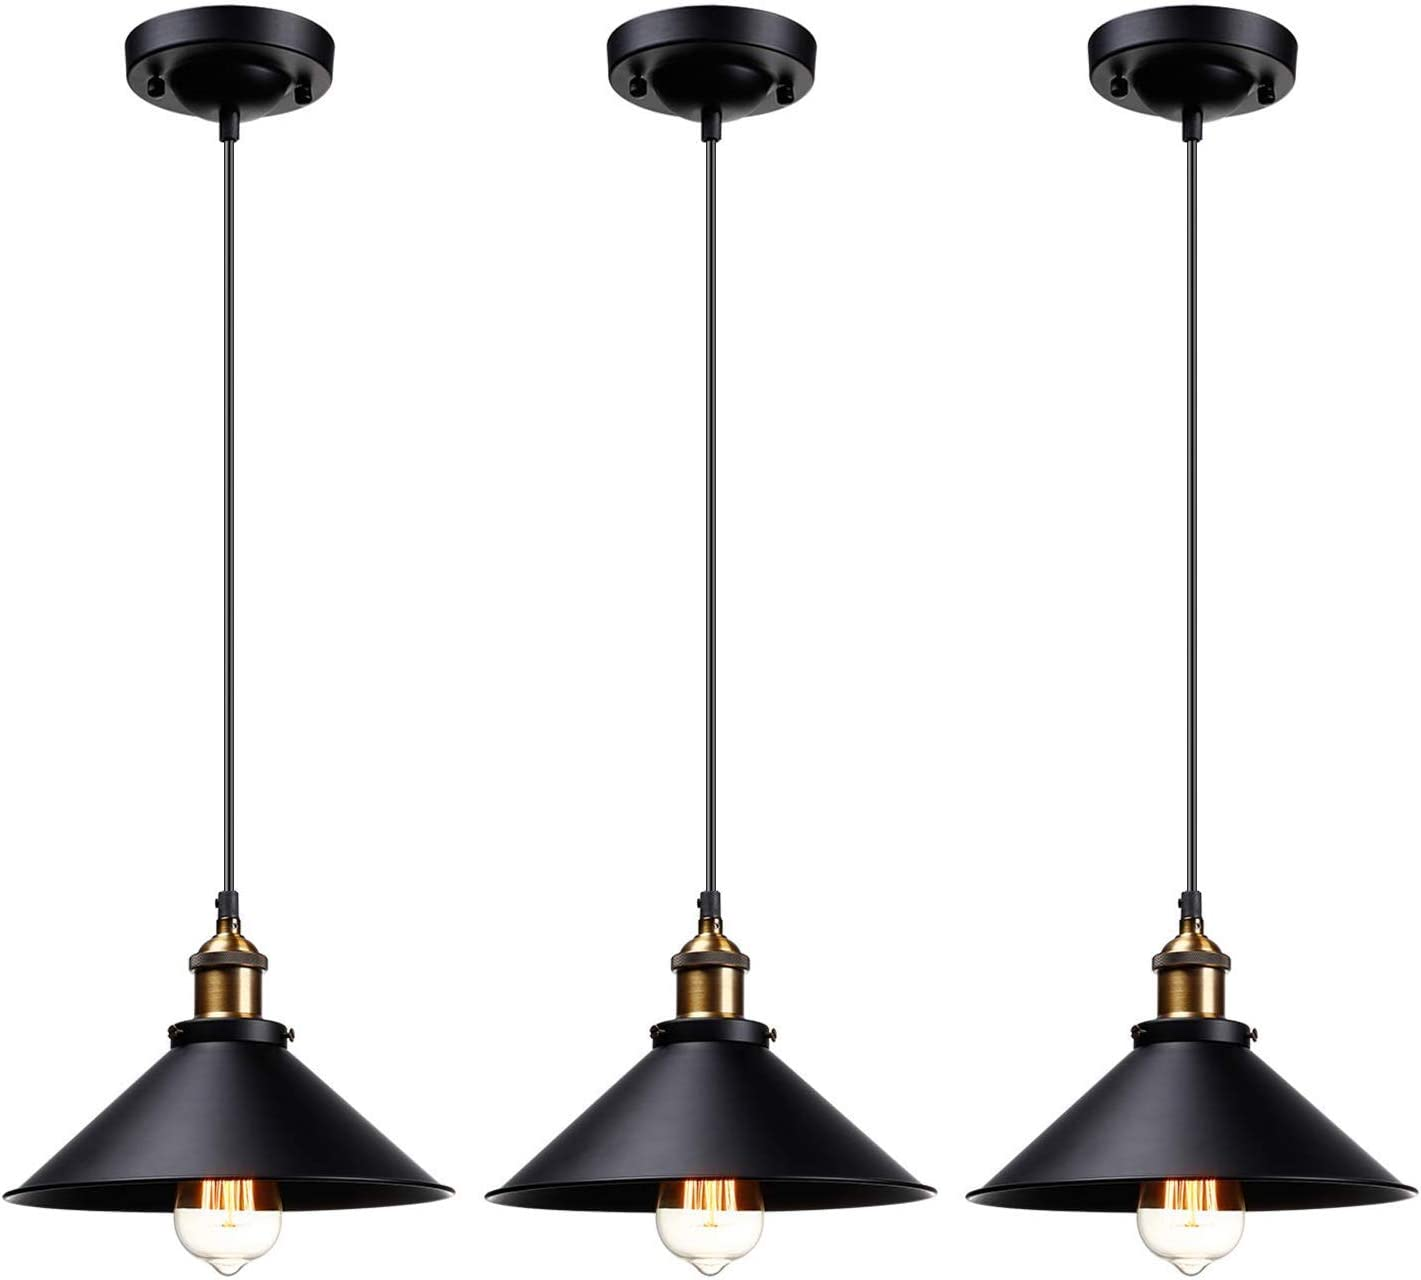 LEONLITE Industrial Hanging Pendant Light, Rustic Farmhouse Style, 10 Inch Matte Black Metal Shade, Retro Vintage Hanging Light, for Dining Room, Bars, Warehouse, E26 Base, UL Certified, Pack of 3